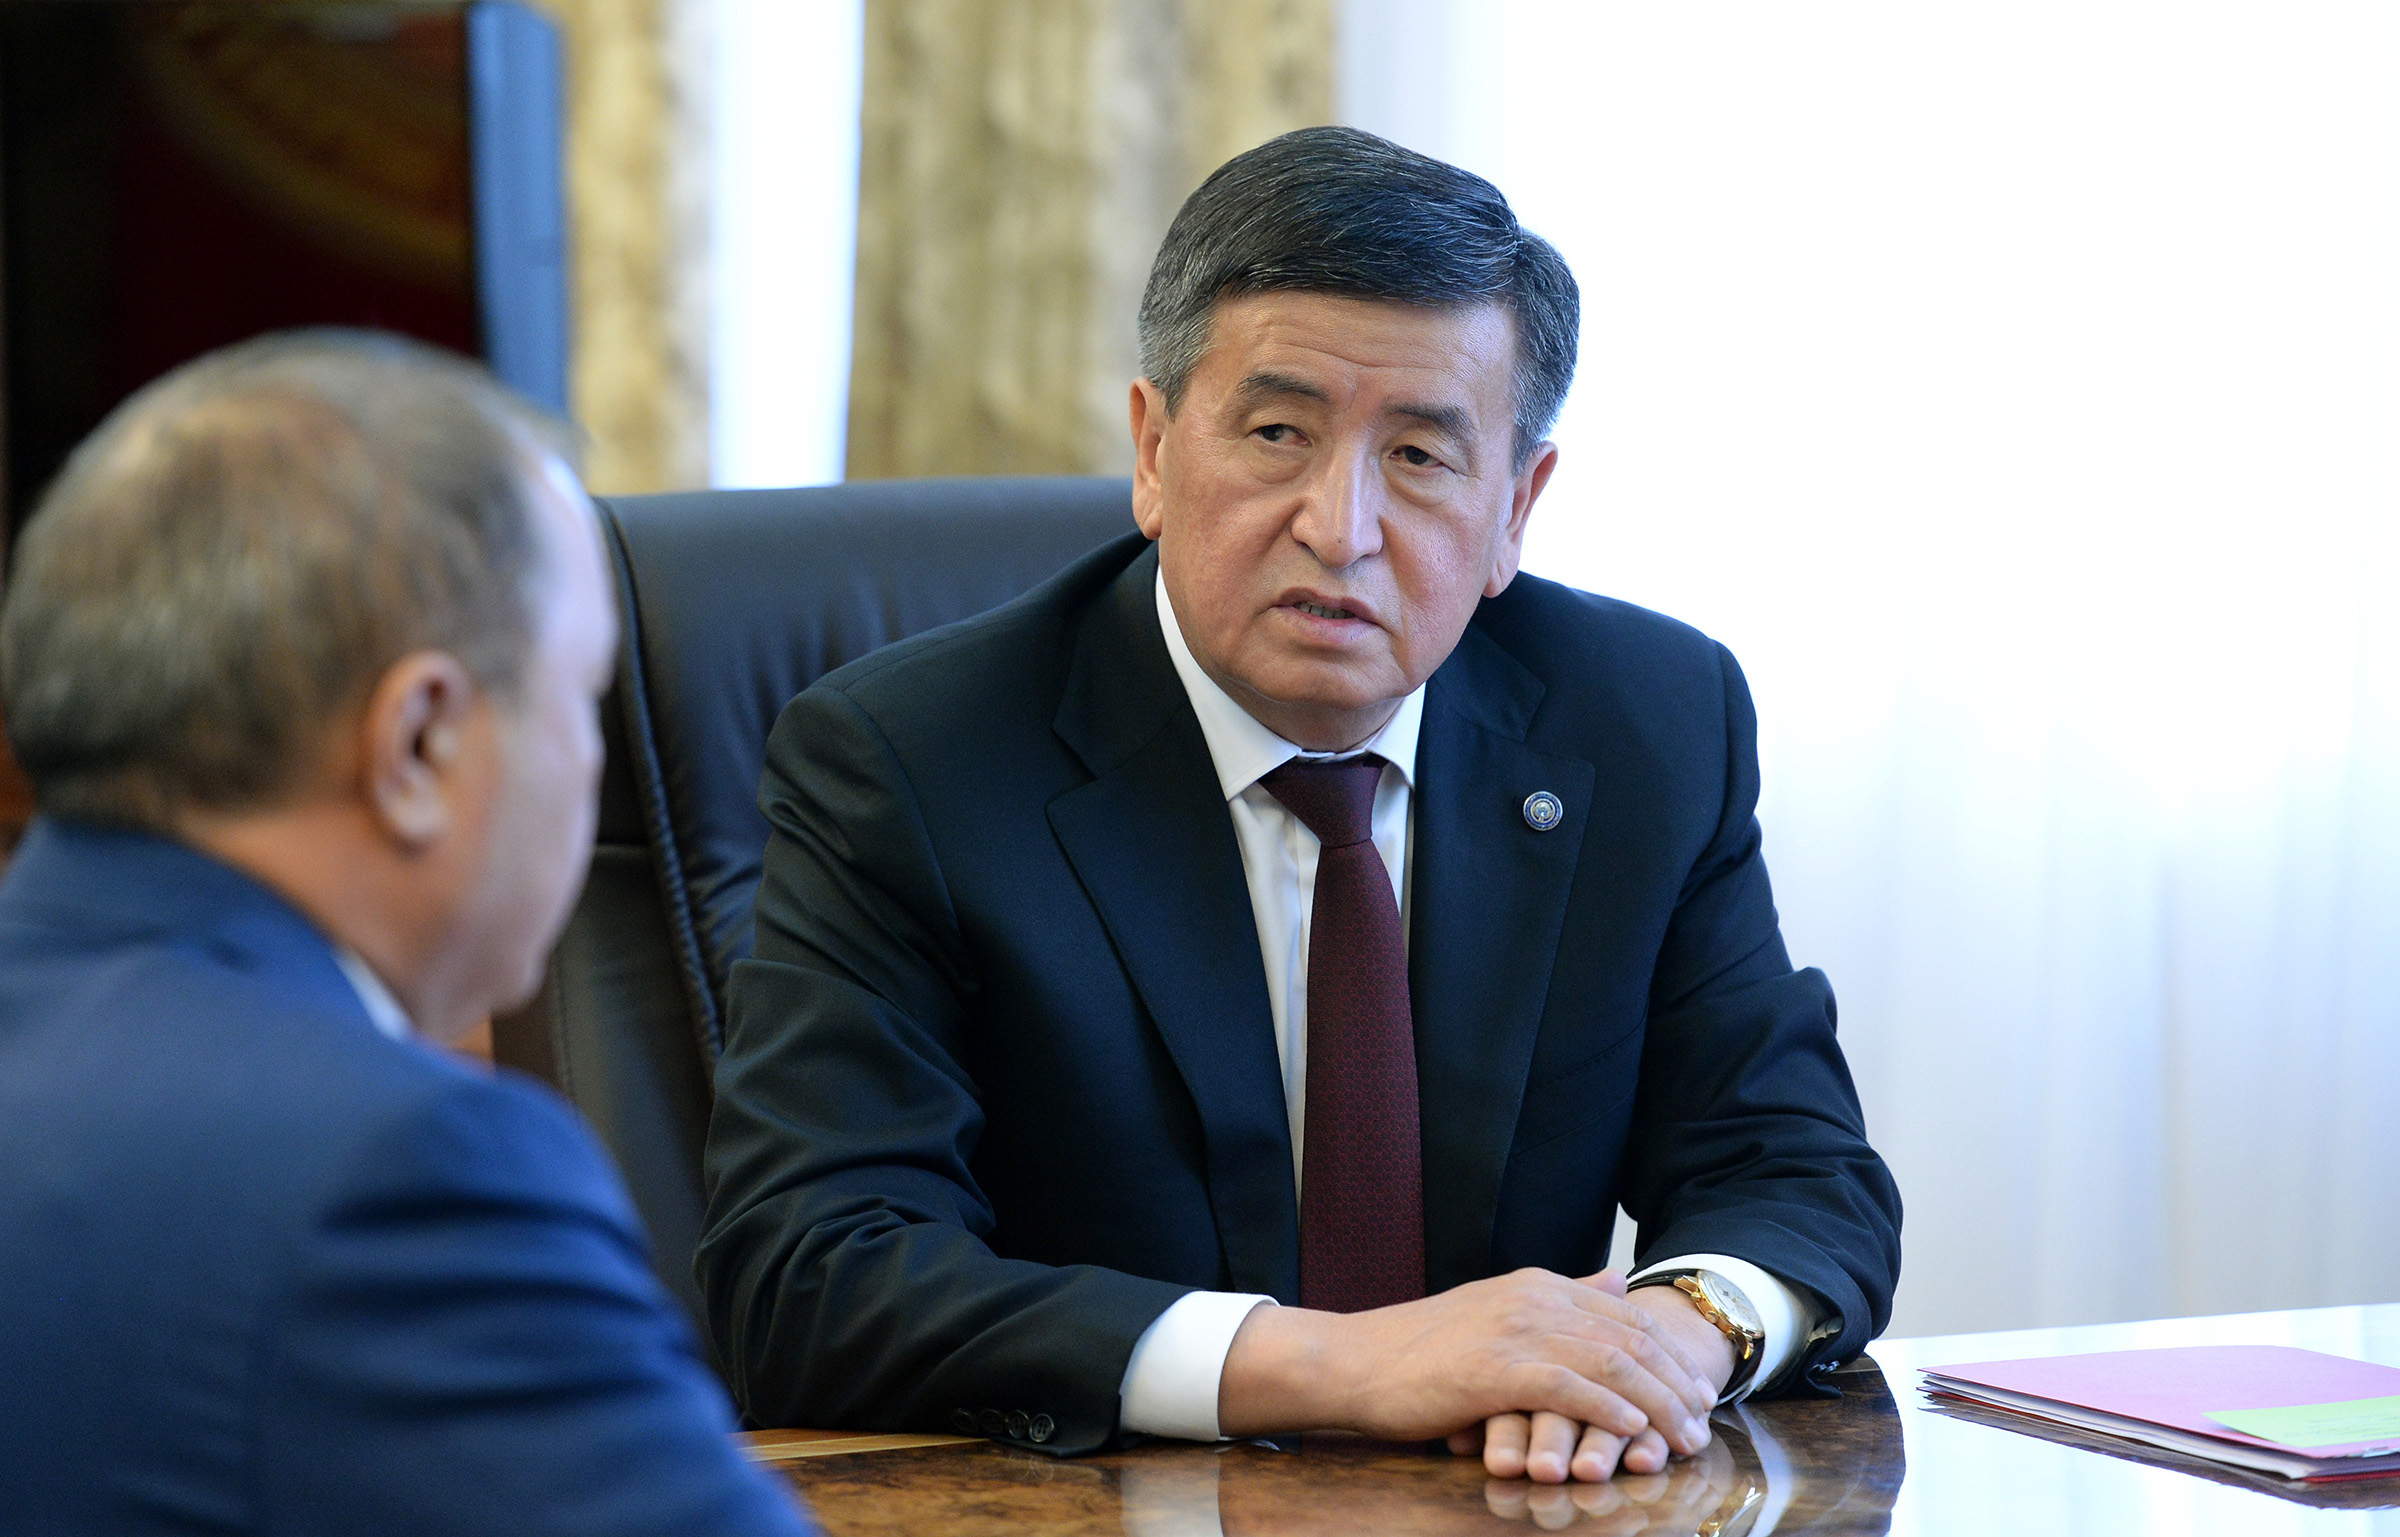 Sooronbai Jeenbekov was elected president of Kyrgyzstan in October 2017.